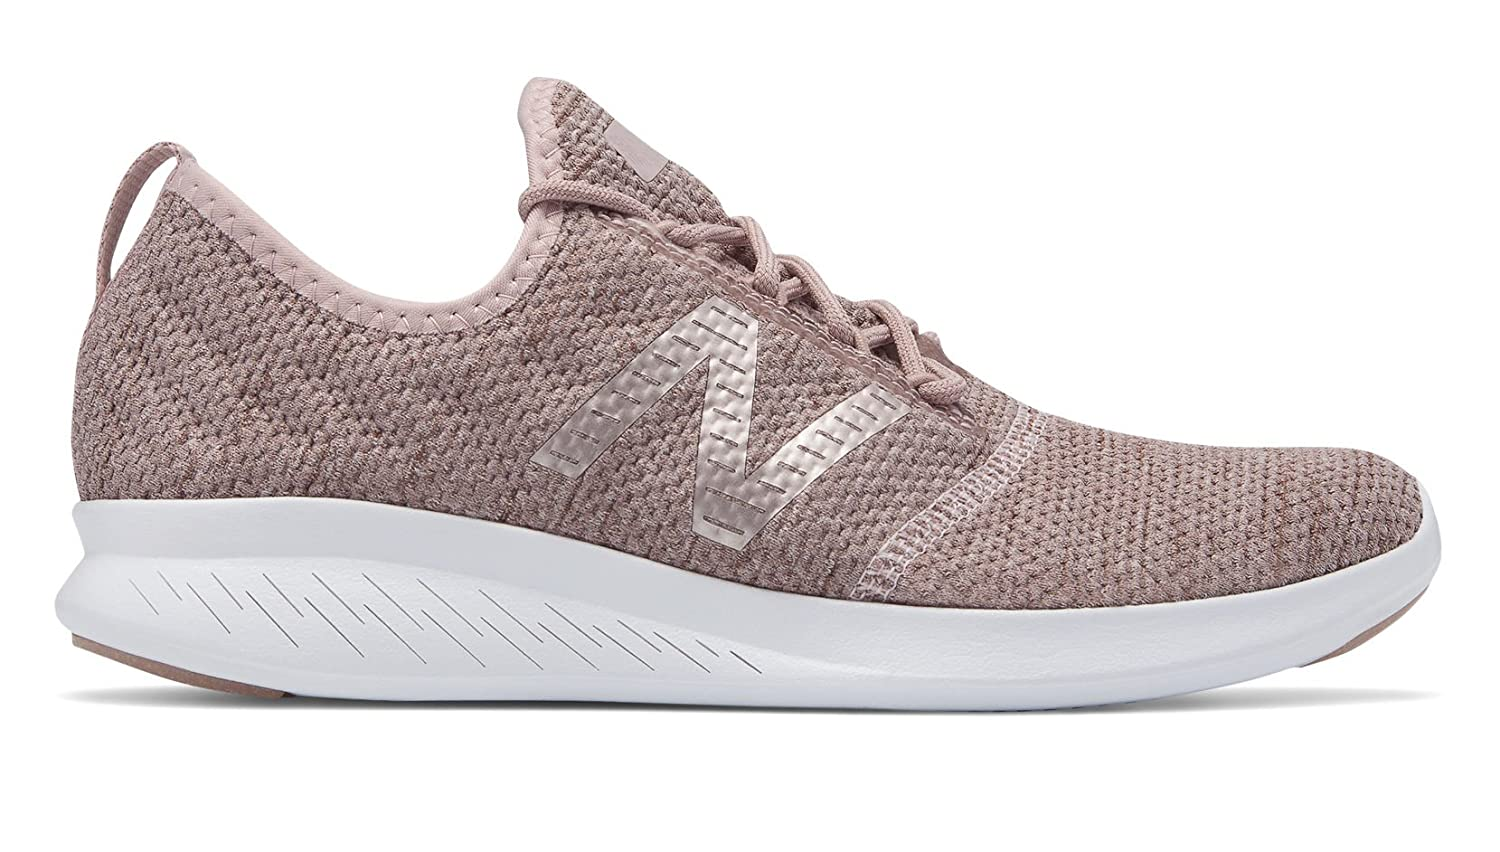 New Balance Women's Coast V4 FuelCore Running Shoe B07BL2MHHF 5 B(M) US|Charm/Pink Mist/Champagne Metallic